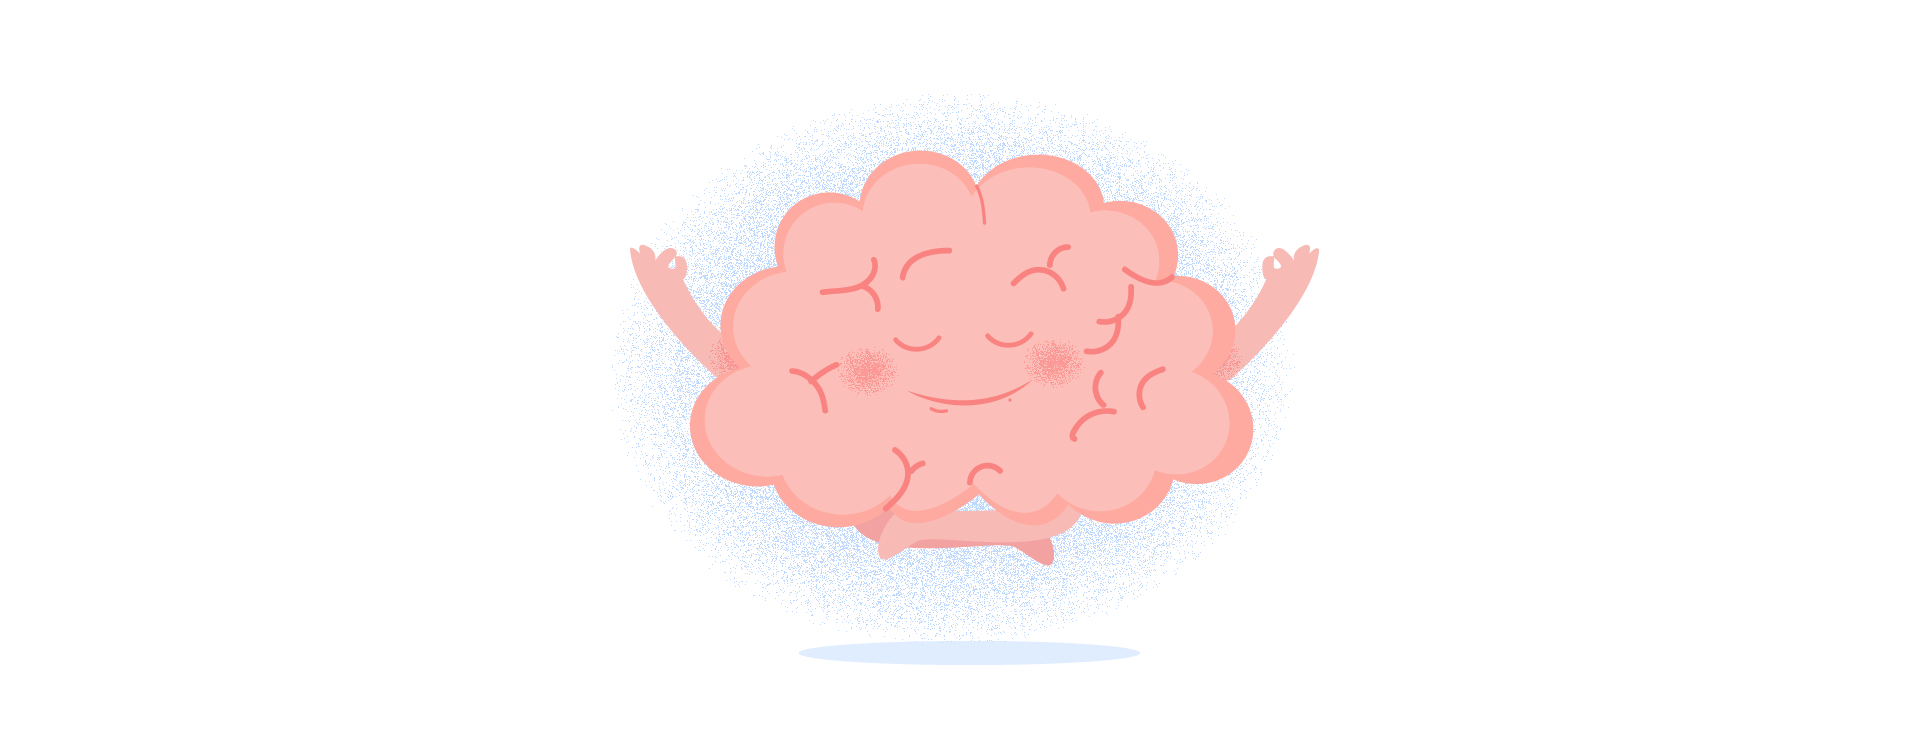 If you think your brain can retain all details of every work and personal activity, take a deep breath and think again. By nature, work creates stress for us as it's the means of our sustenance. That's why we put more emphasis and importance on work.